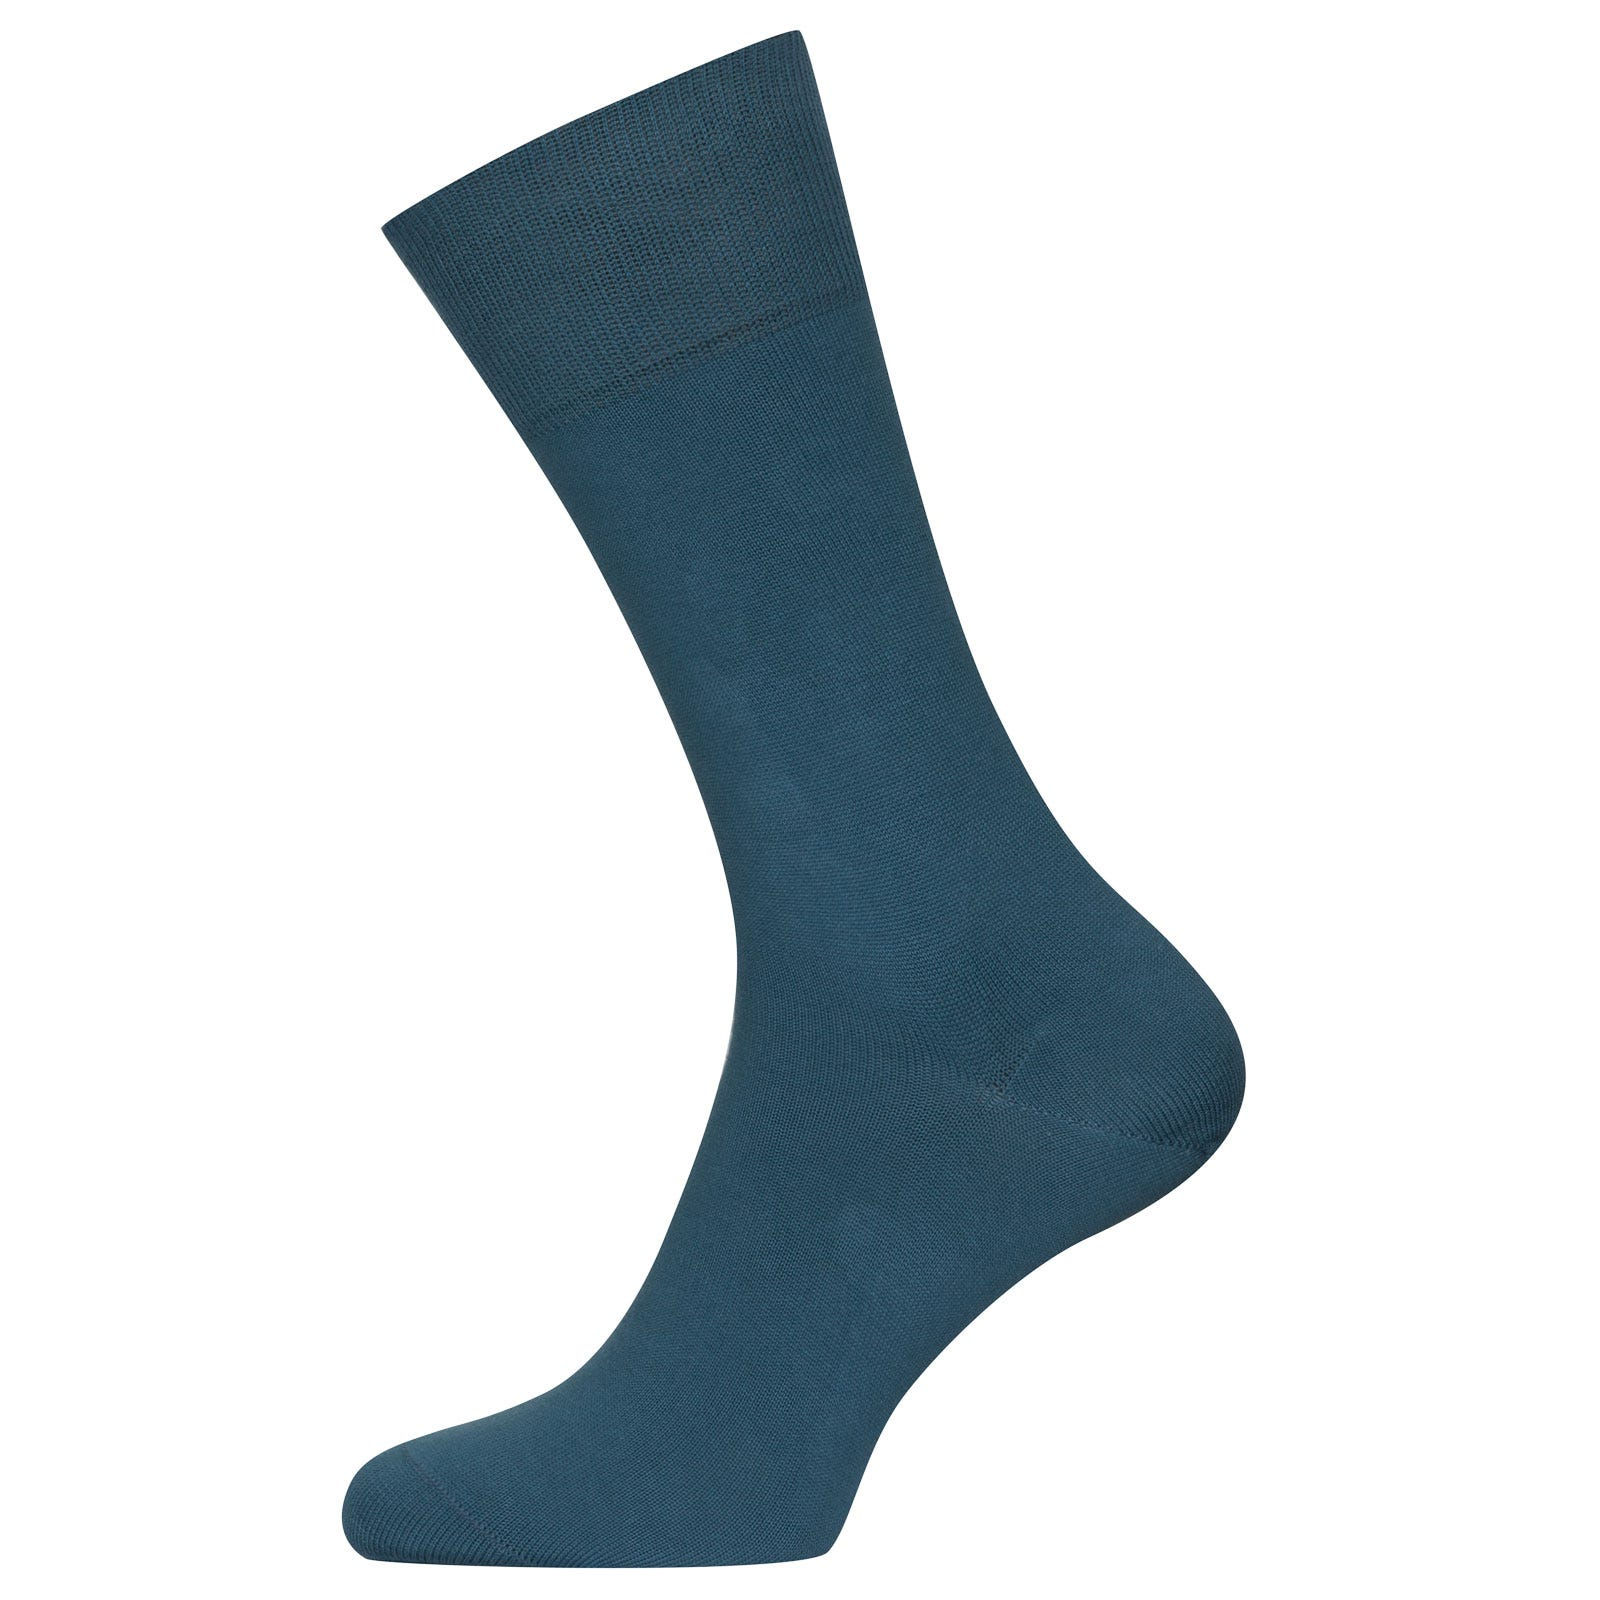 John Smedley Sigma Sea Island Cotton Socks in Bias Blue-S/M